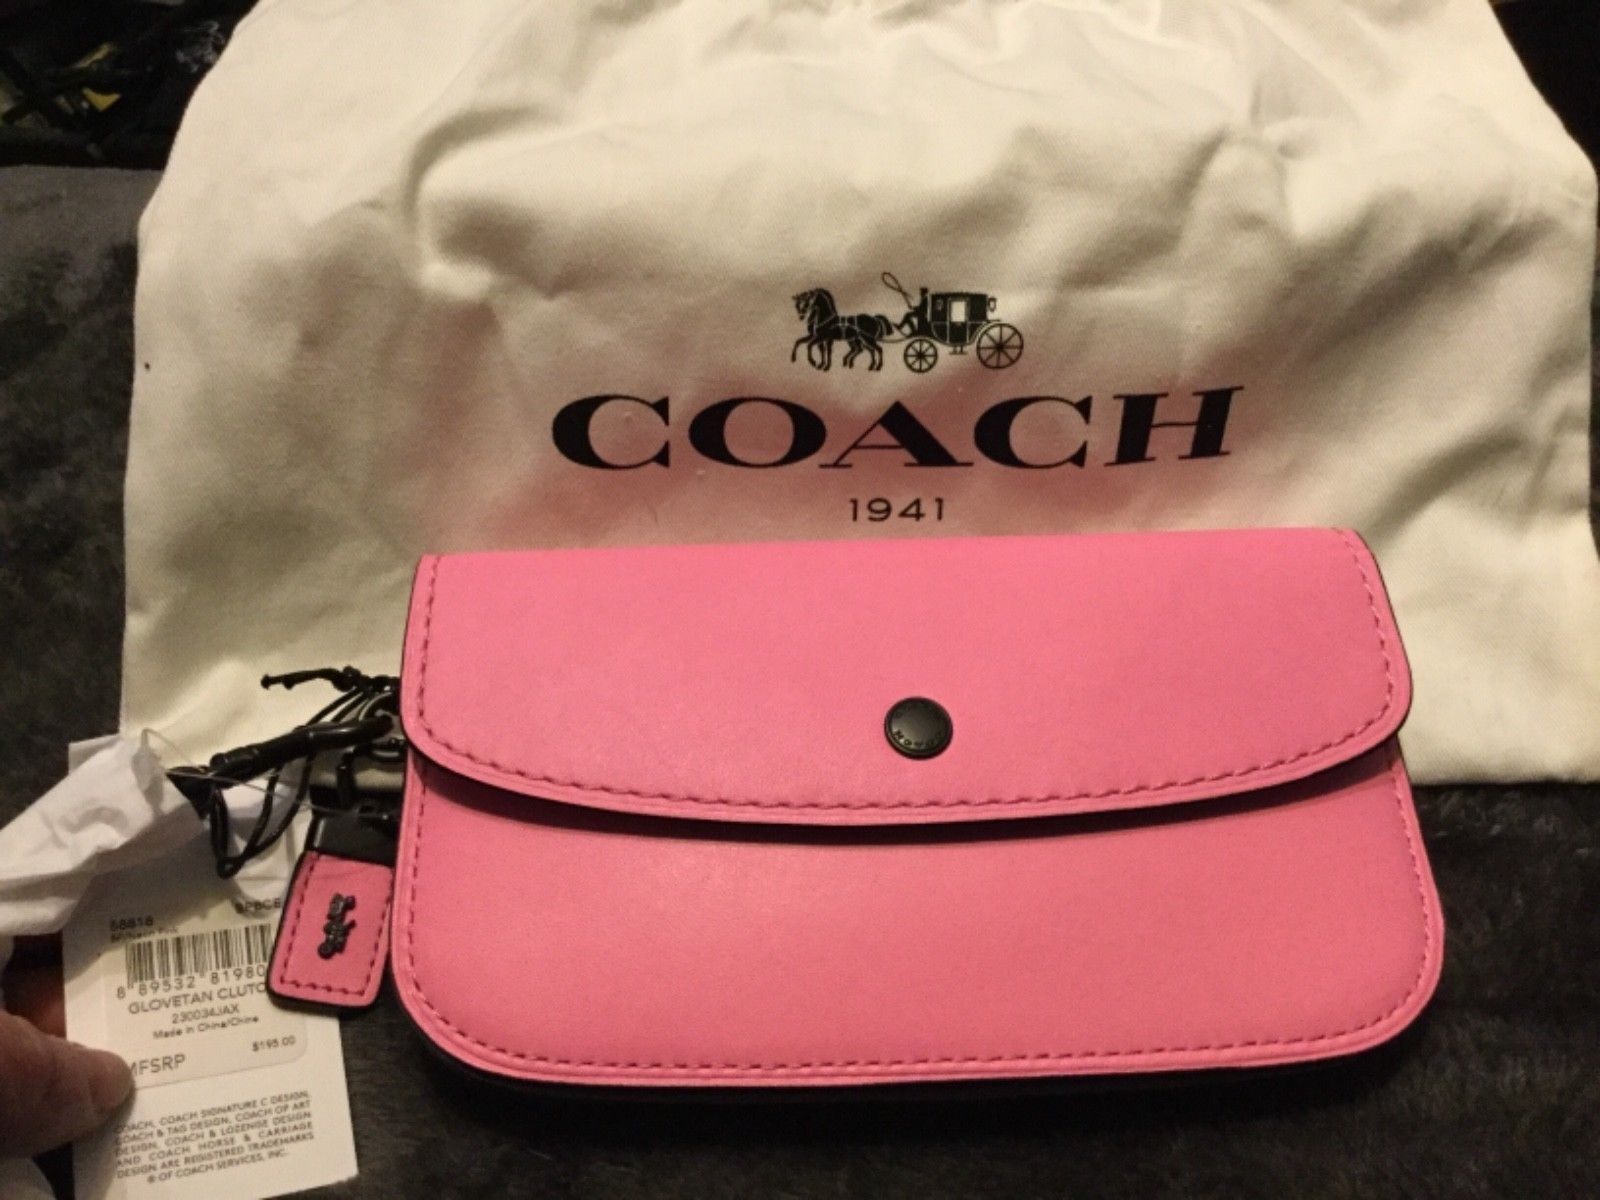 1208a0fb1f Coach 1941 Neon Pink Glovetanned Leather Clutch  Wristlet 58818 NWT ...